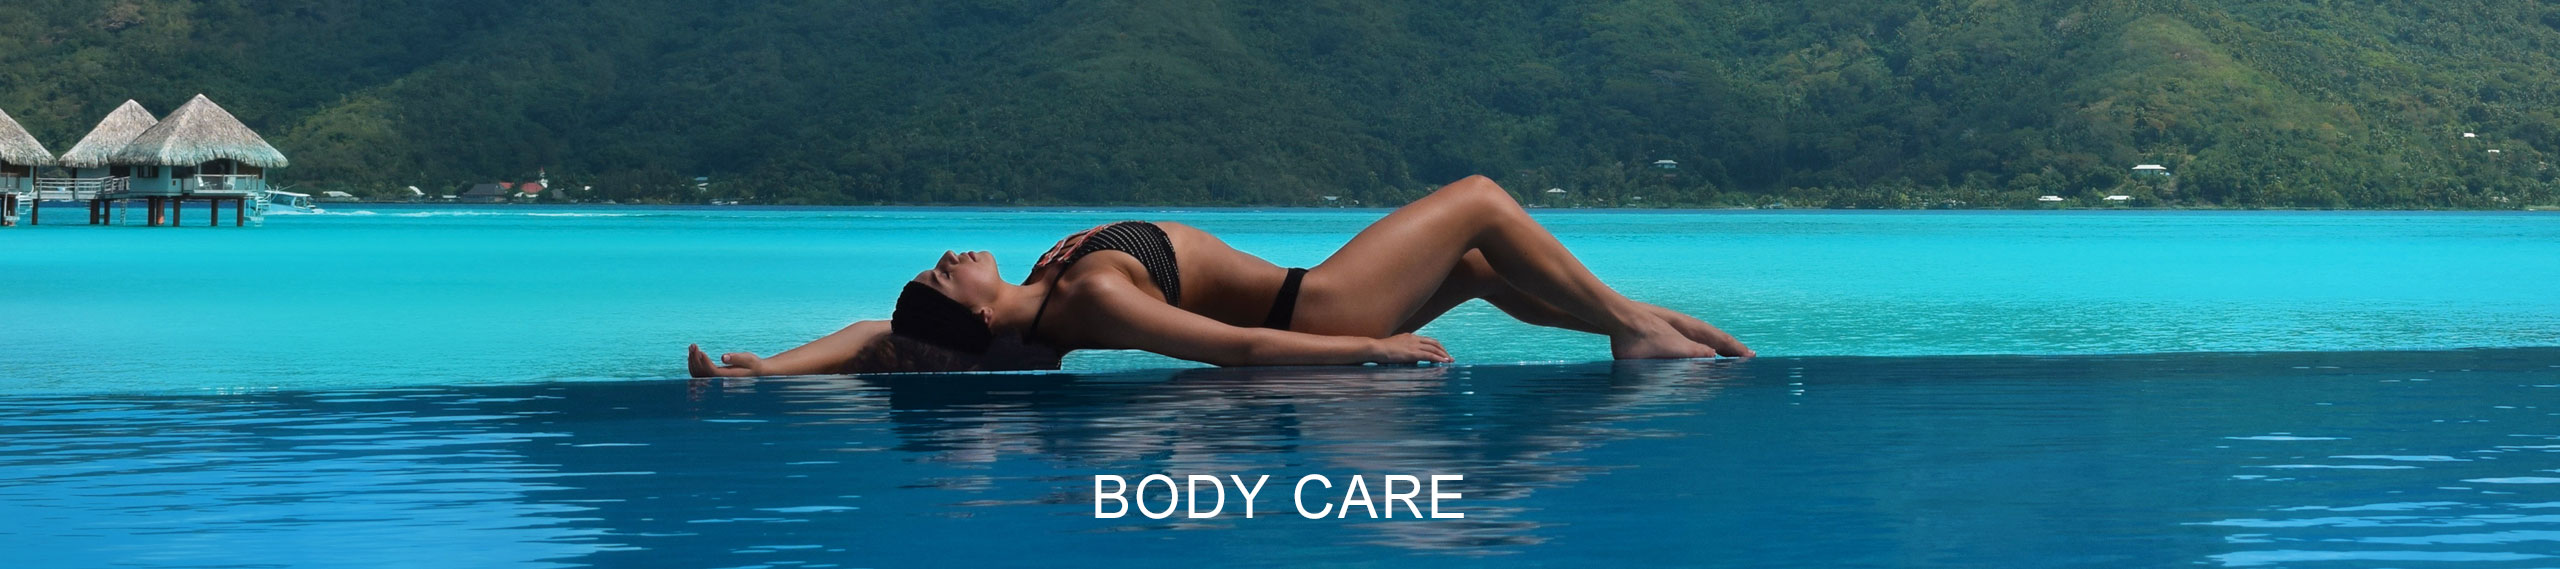 BODYCAREHEADER_1